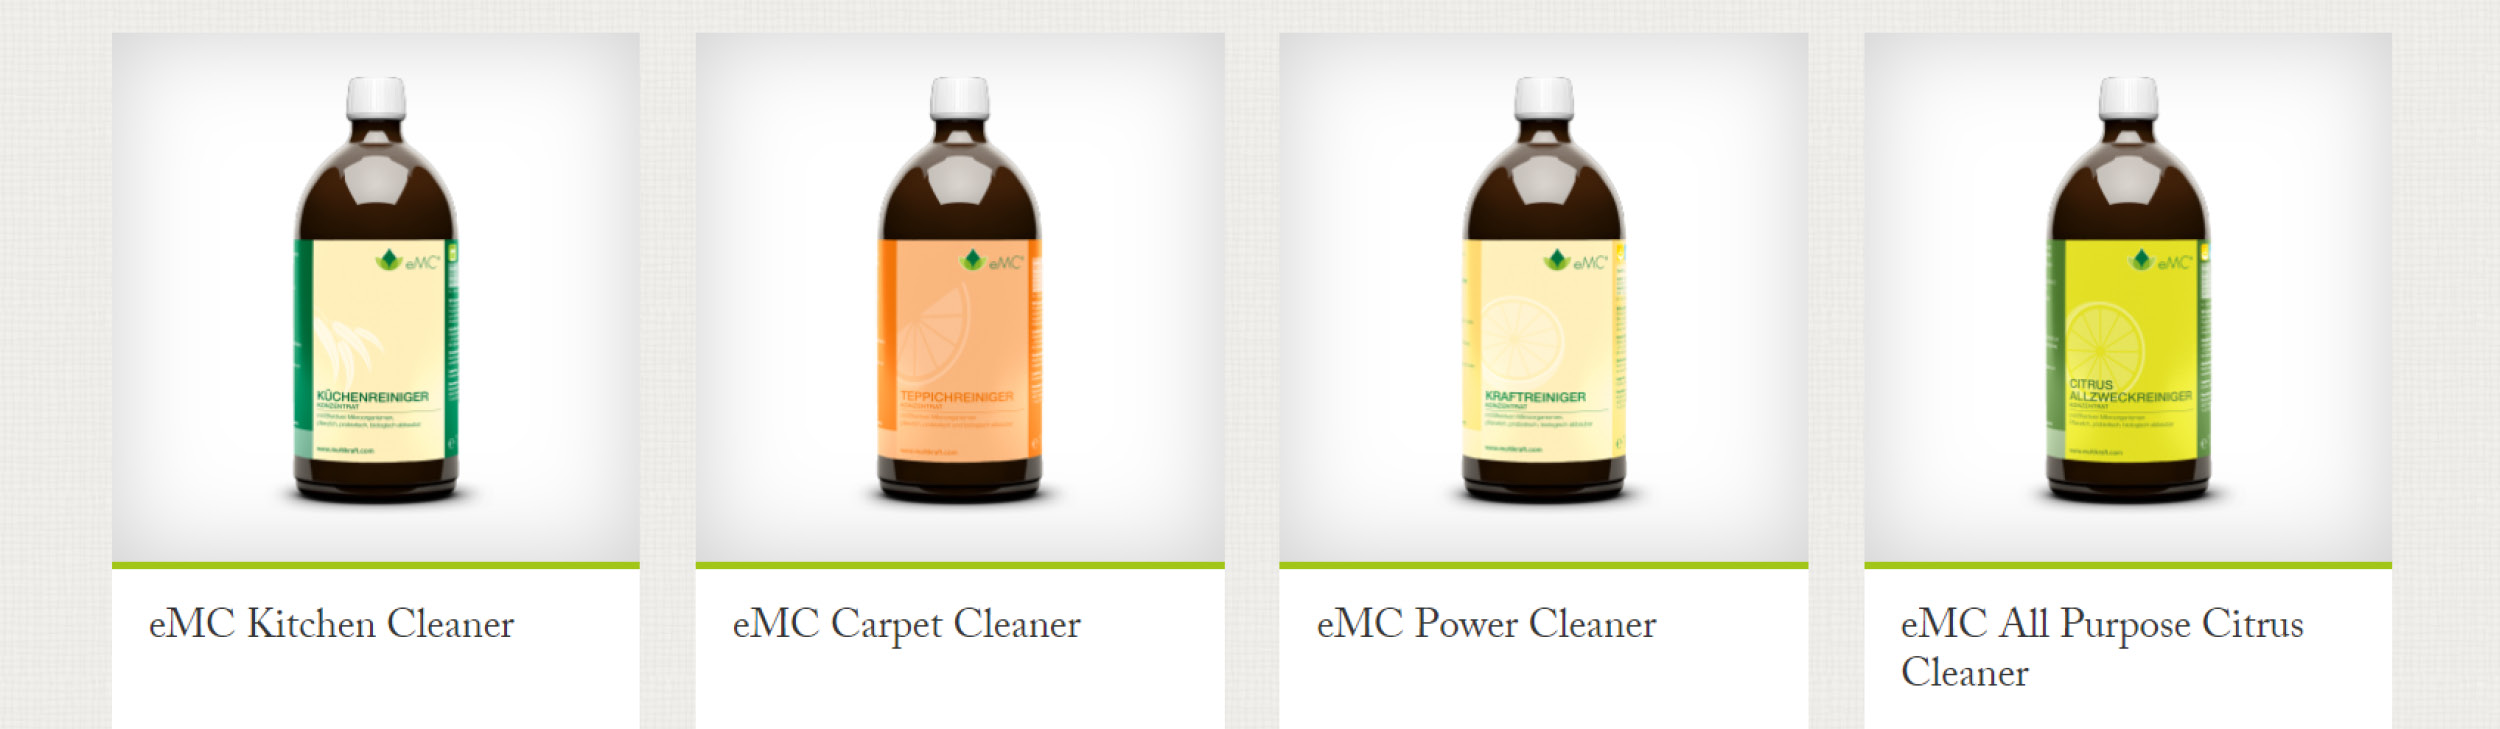 Effective microorganisms products - wide range